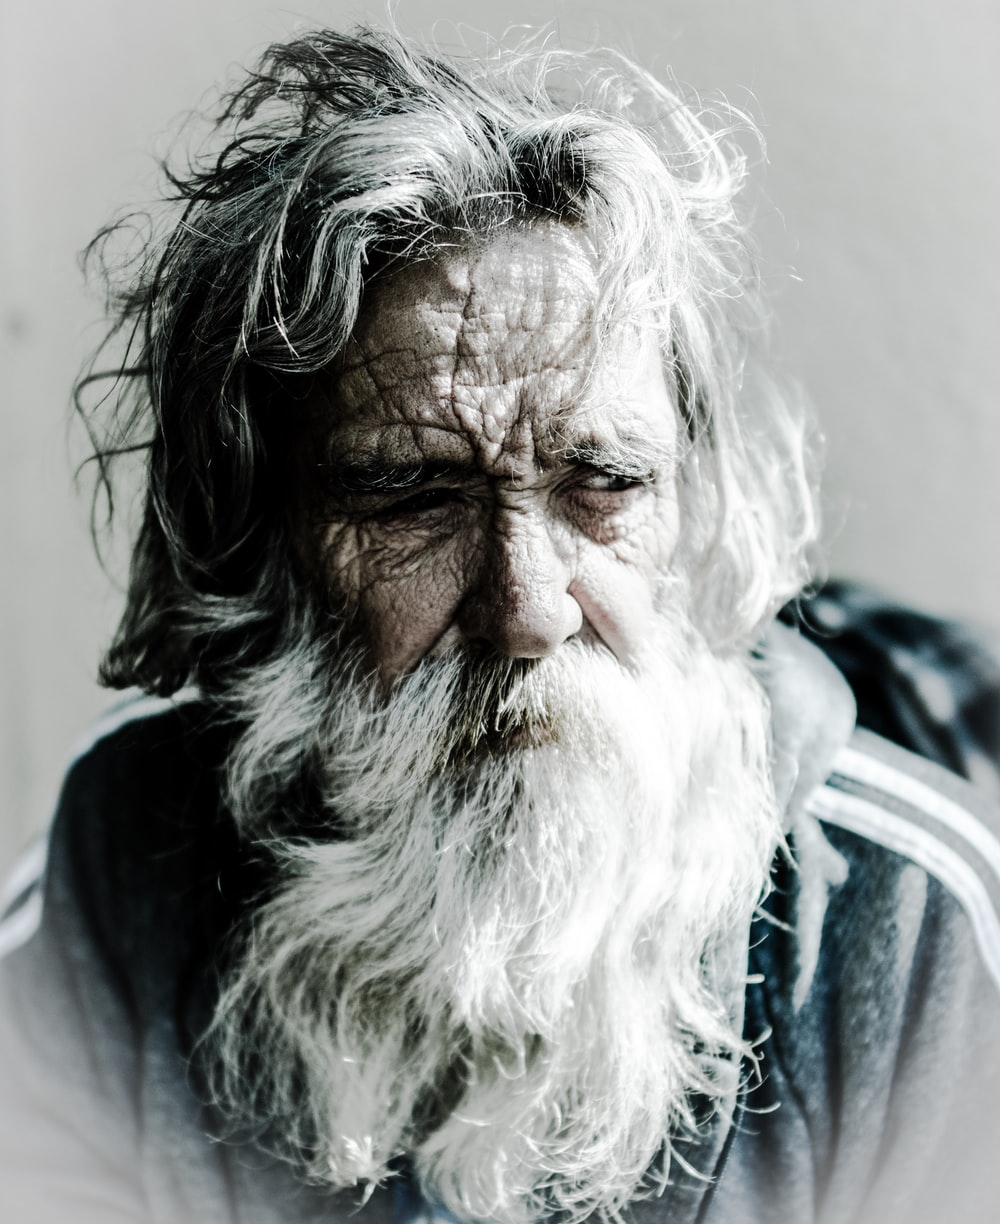 man's portrait photography